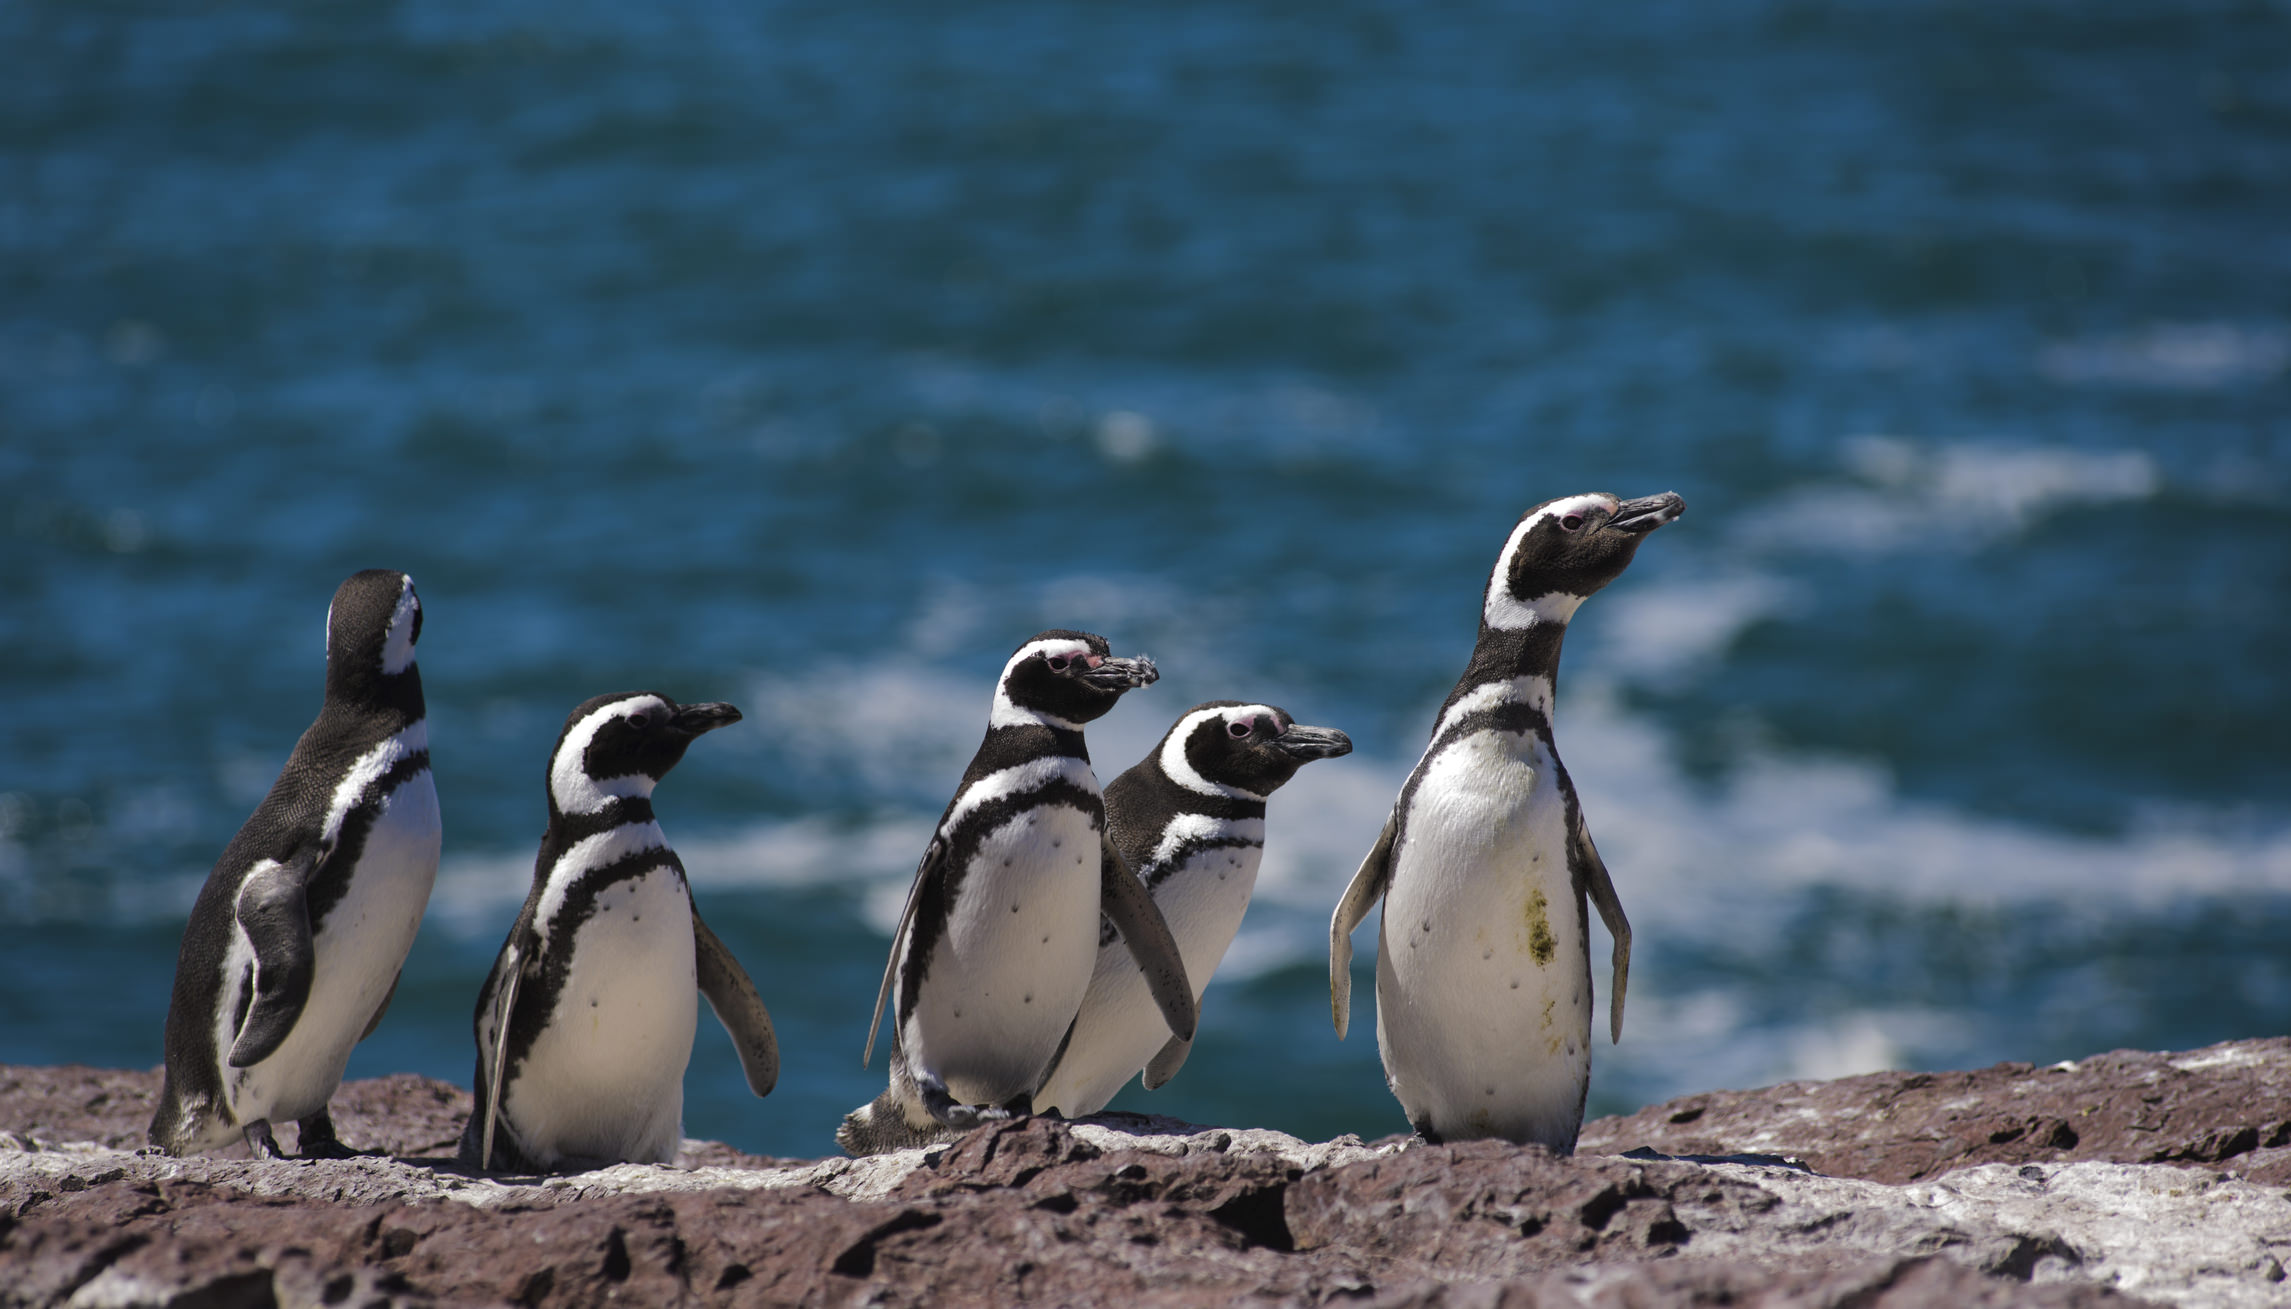 Patagonia photography Monte Leon National Park Argentina  Santa Cruz penguins on the shore